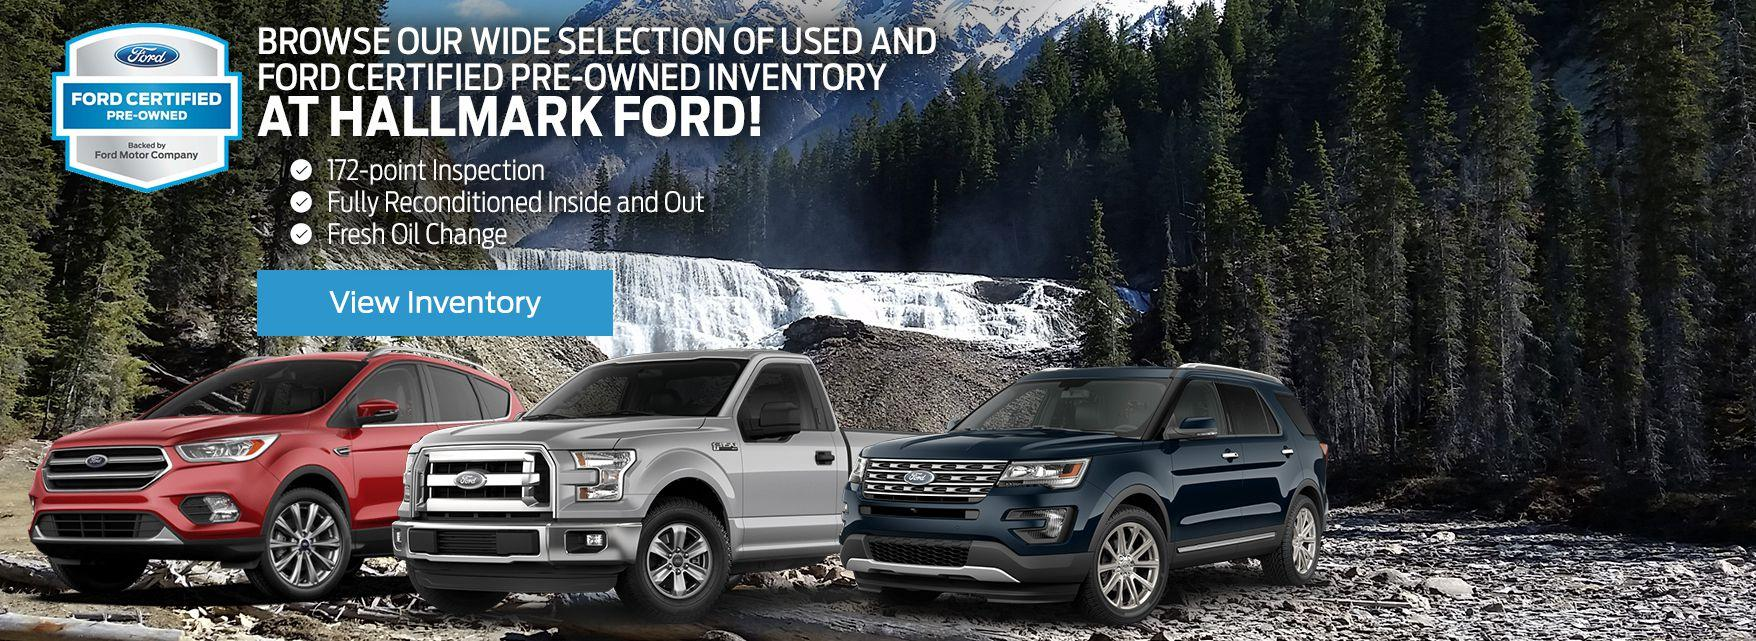 Certified Pre-Owned Inventory at Hallmark Ford